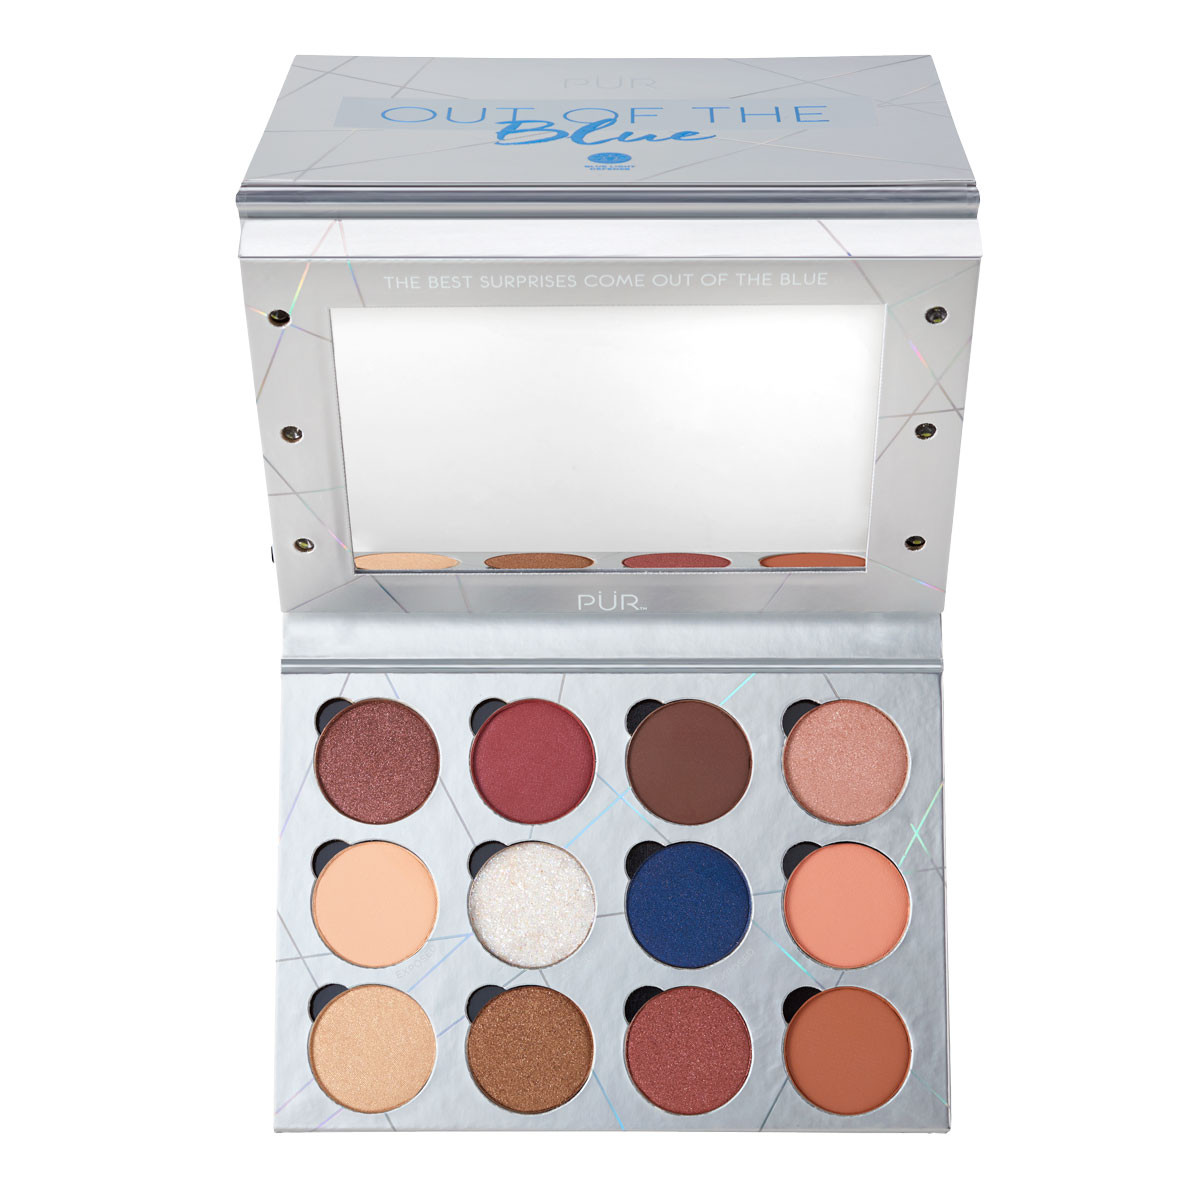 Out of the Blue Light Up Vanity Eyeshadow Palette